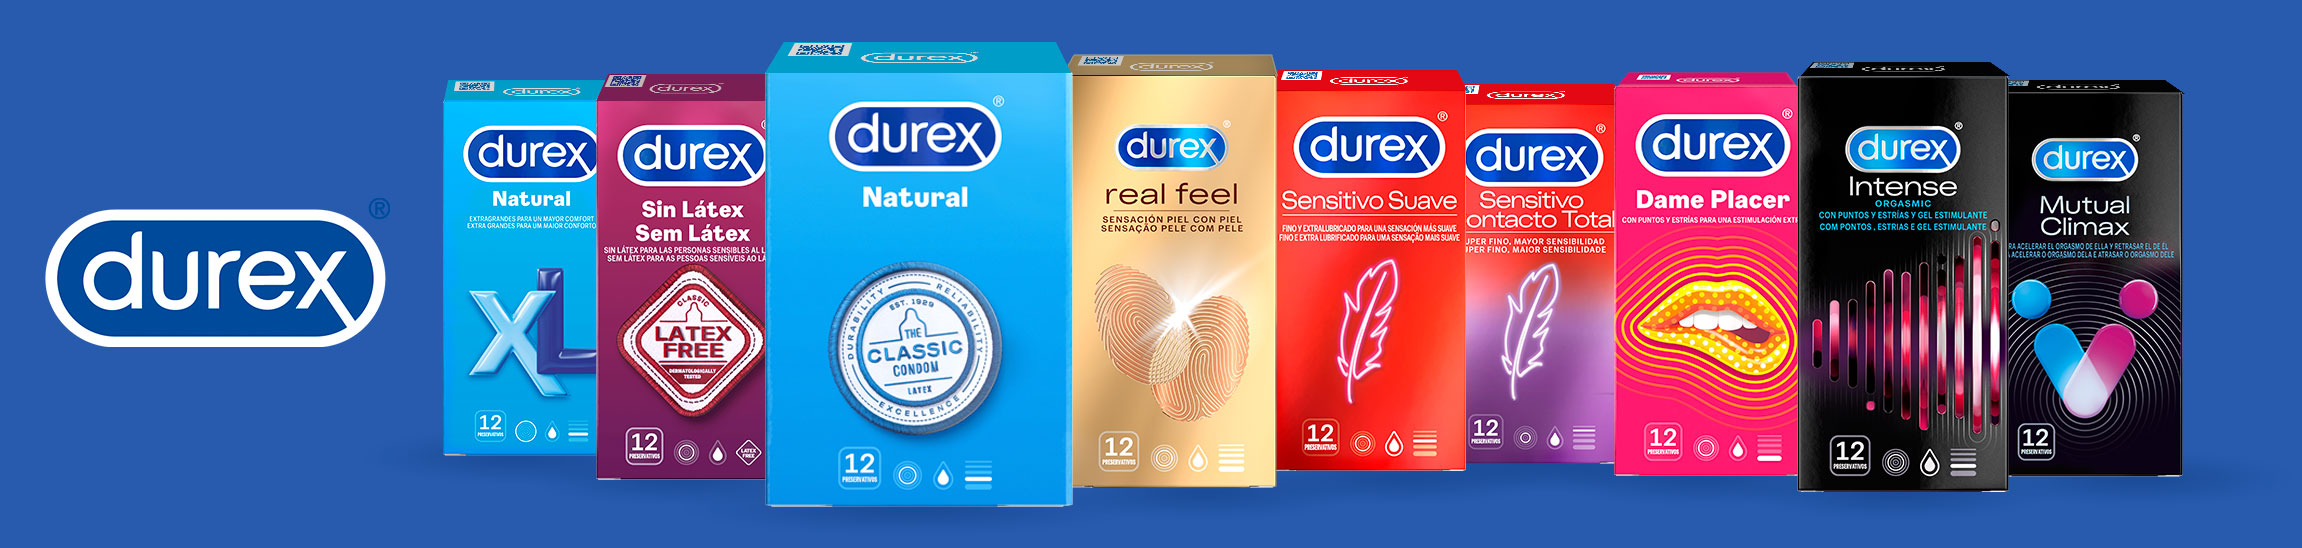 Condones Dures Real Feel, Preservativos Durex Invisible